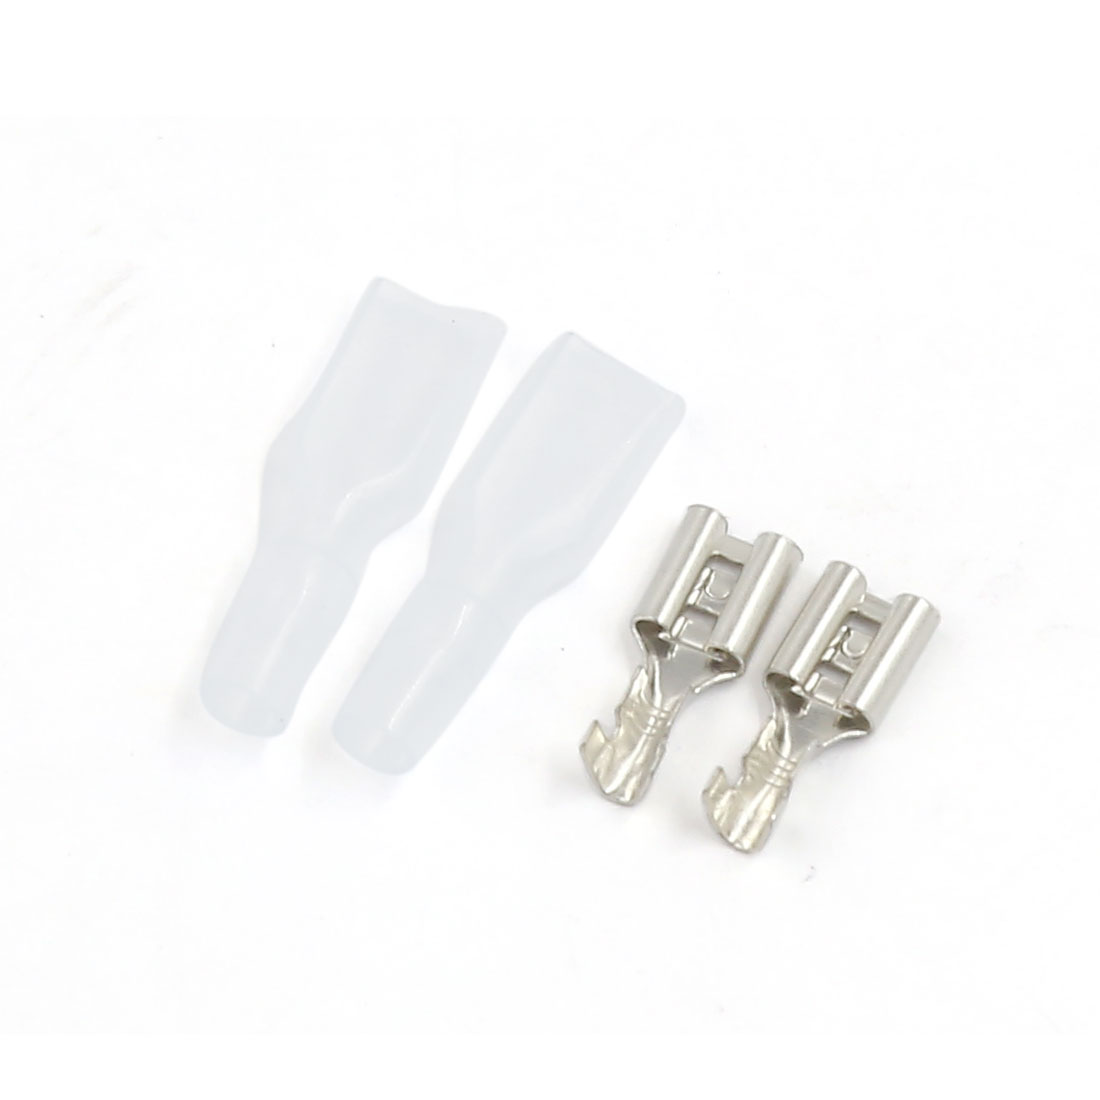 9 Pcs Insert Spring Female Crimp Terminal Connector Insulated Sleeve Cover 4.8mm